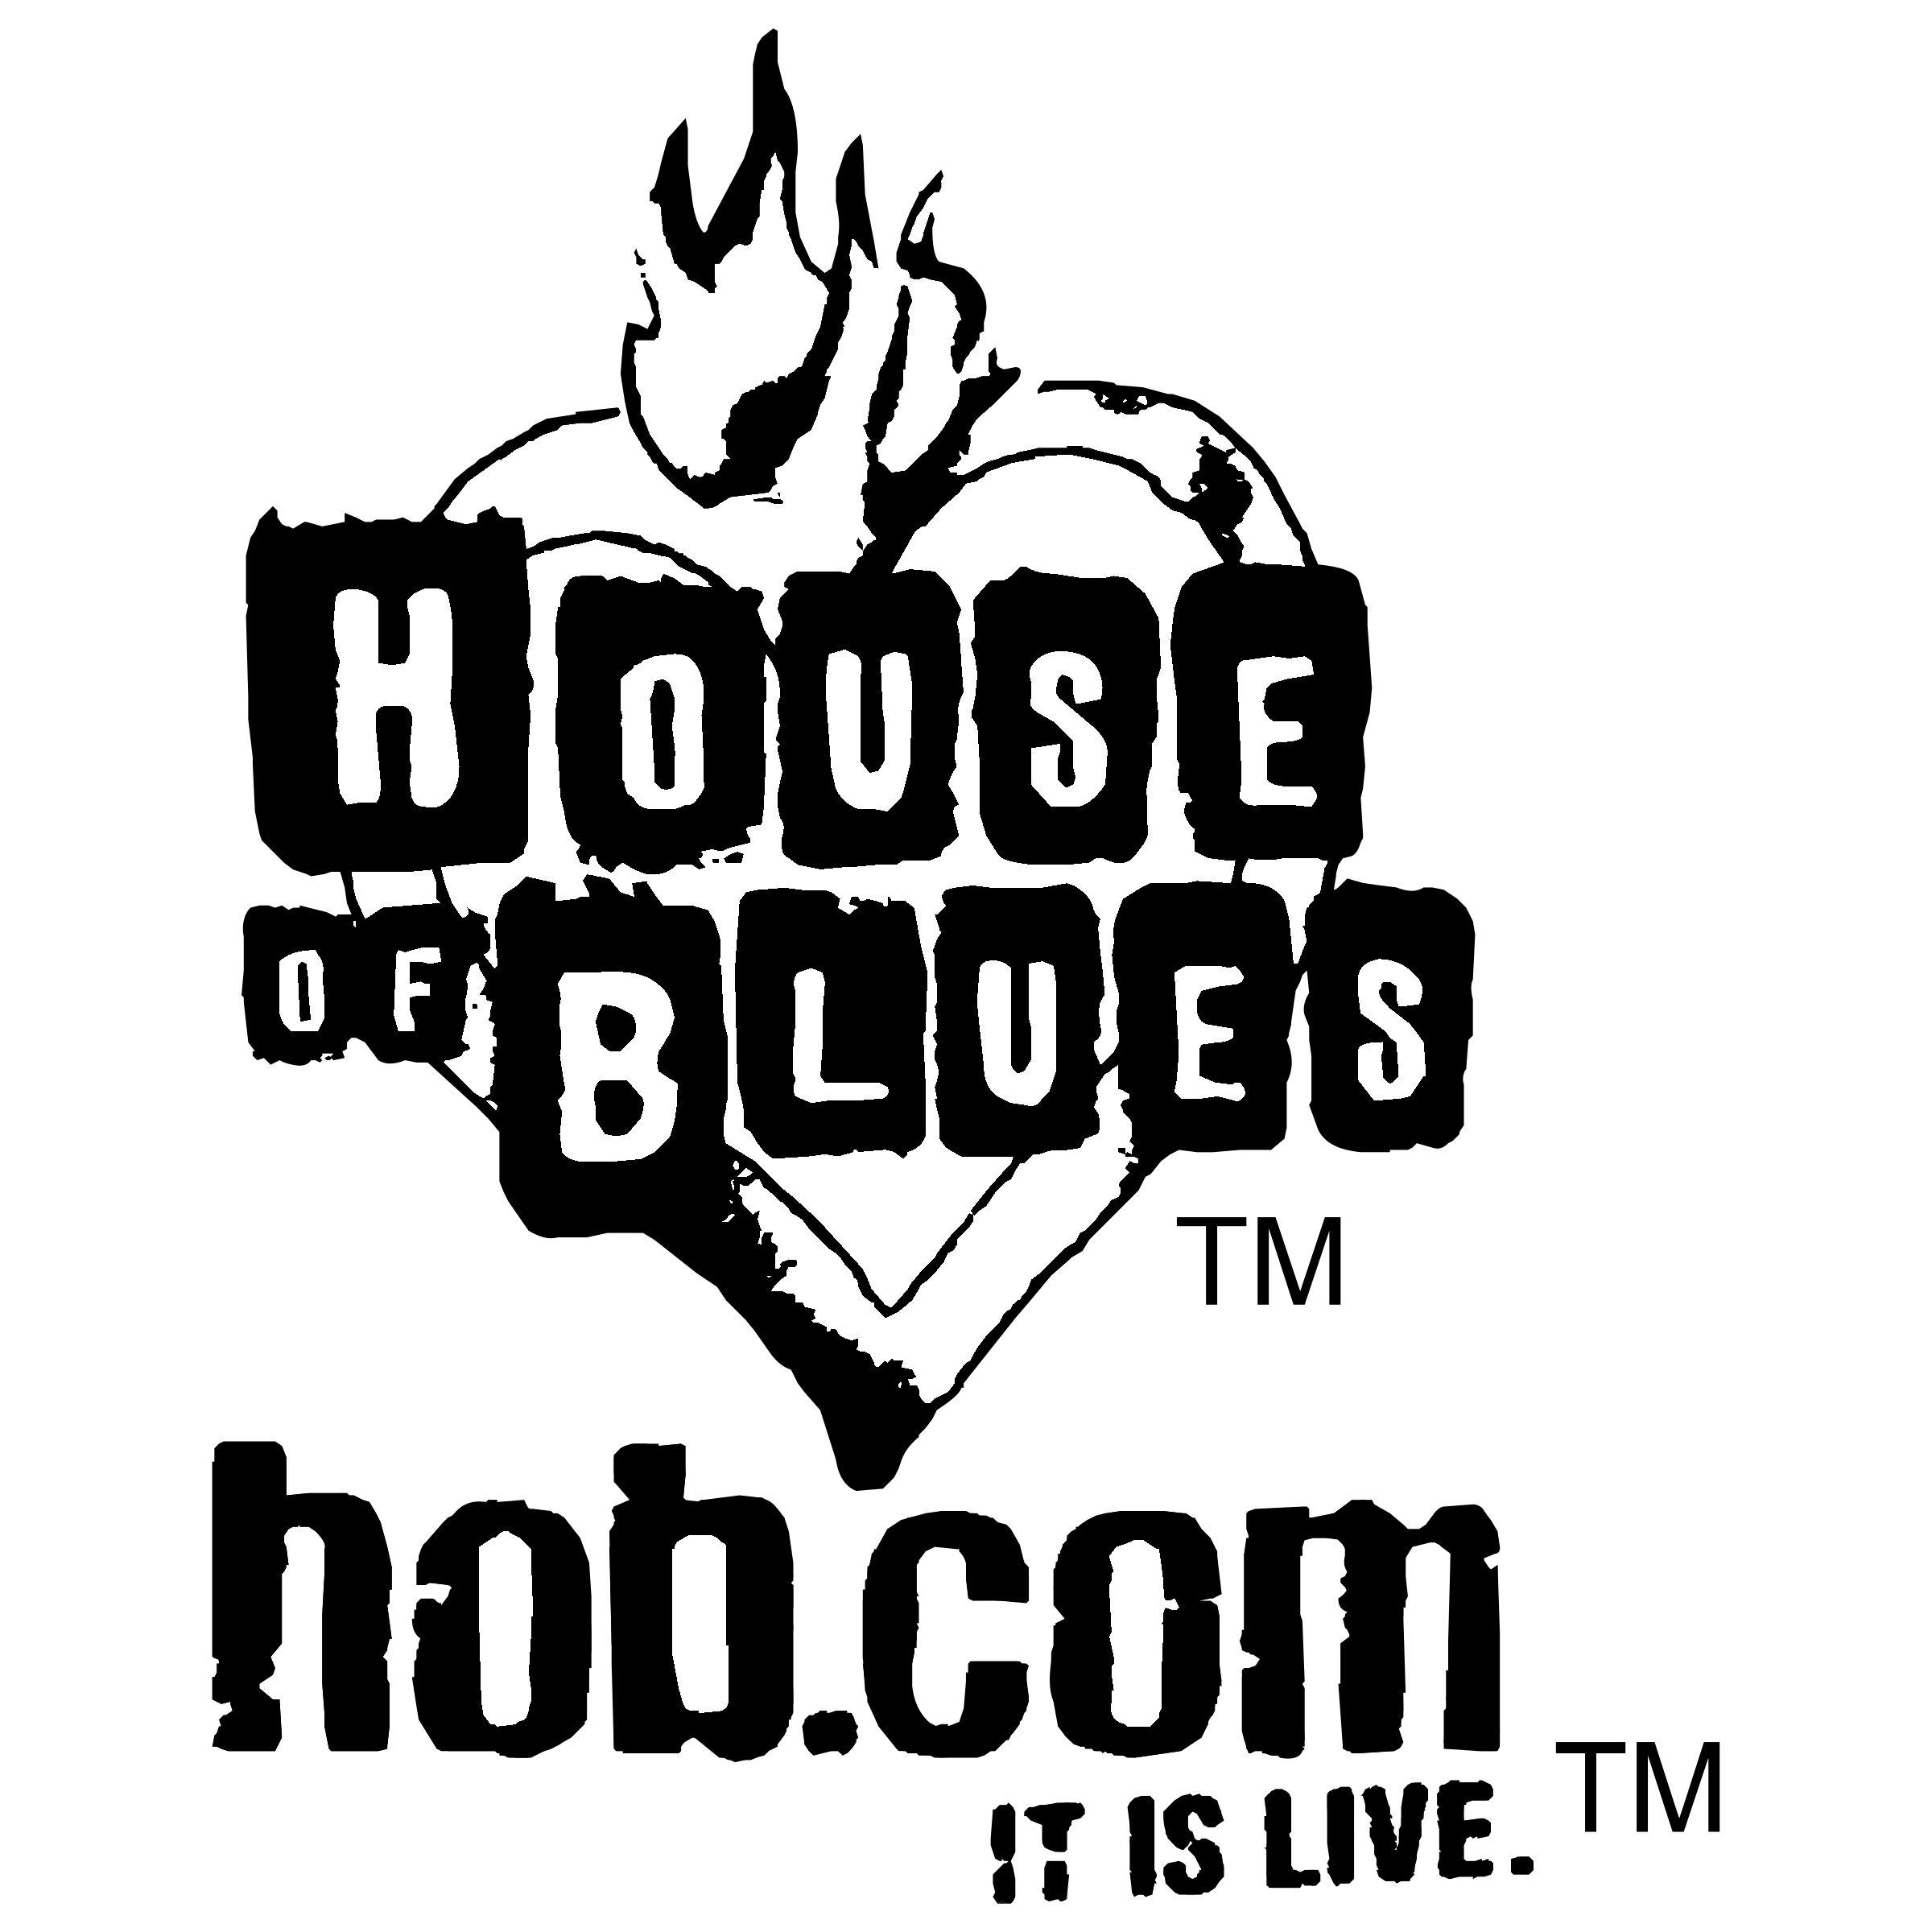 House of Blues Logo PNG Transparent & SVG Vector.